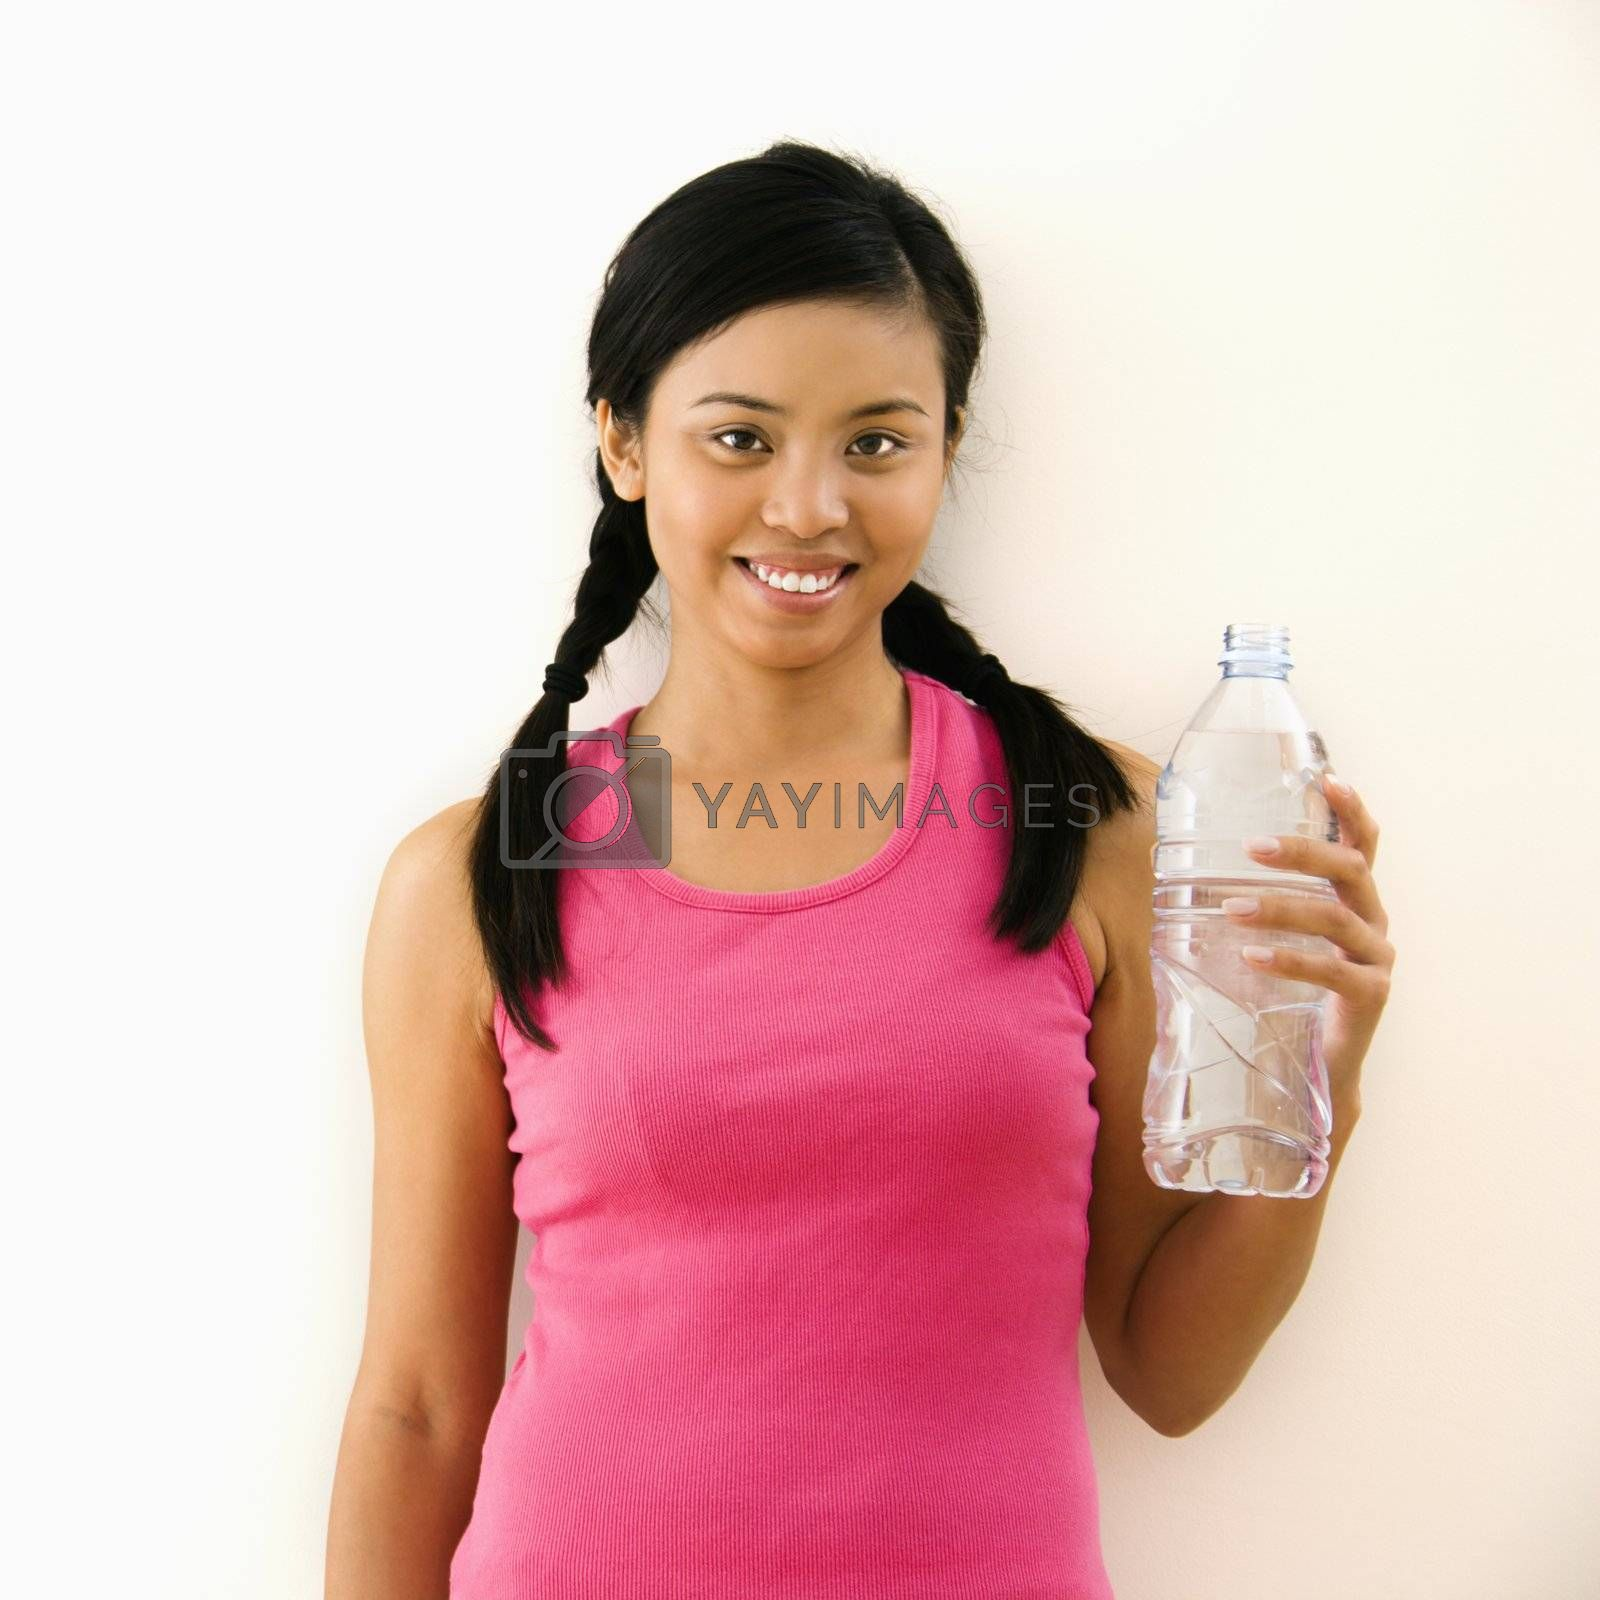 Young woman in fitness outfit holding bottled water and smiling.